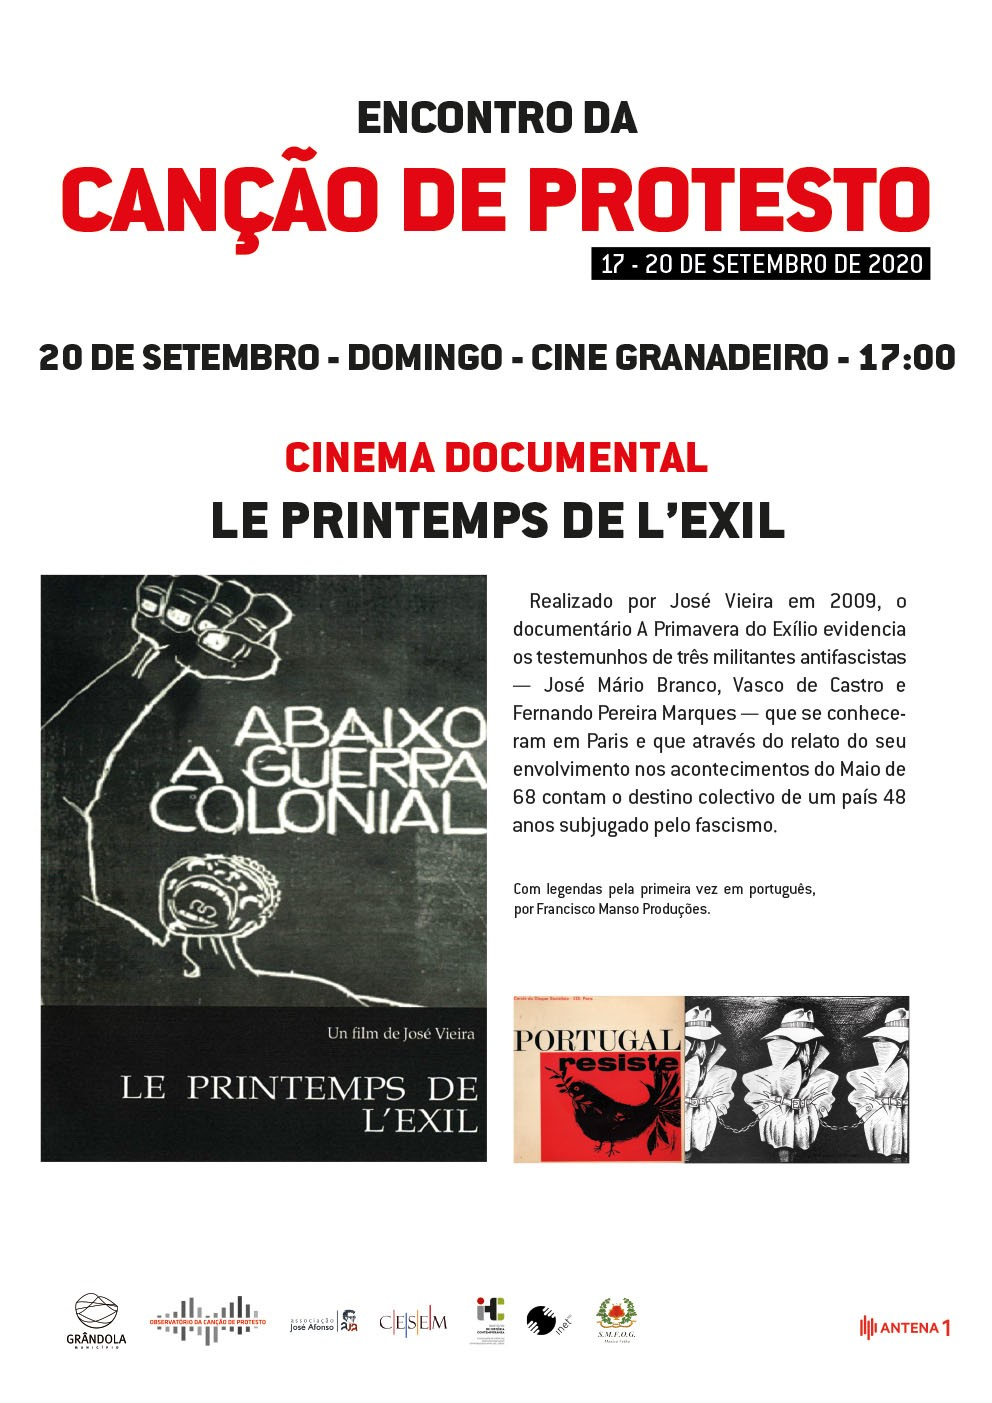 Encontro da Canção de Protesto | Cinema documental | Le Printemps de L'exil